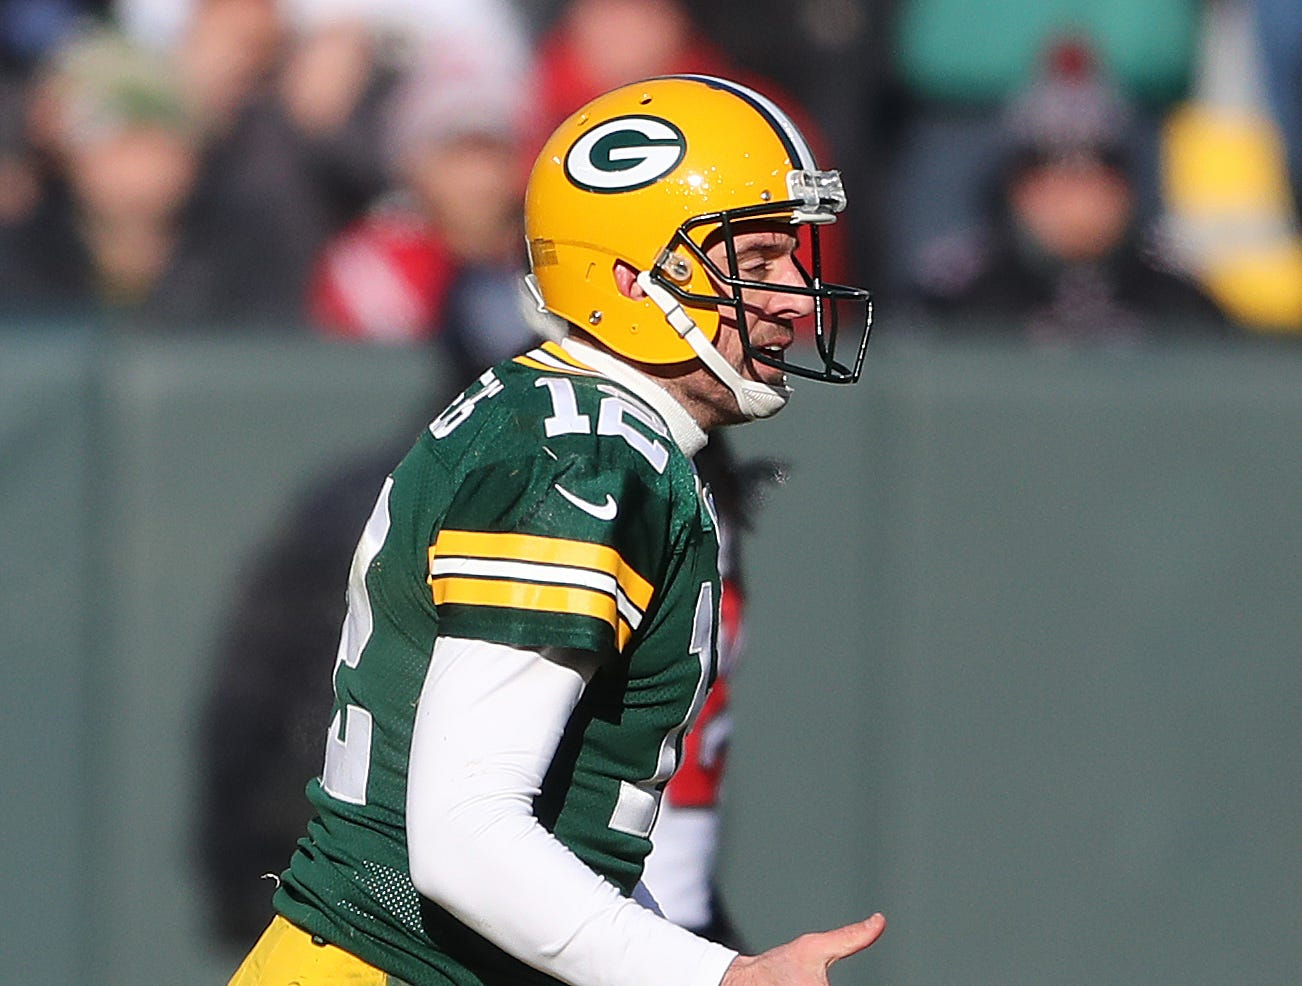 Green Bay Packers quarterback Aaron Rodgers (12) complains to the  officials that his helmet was grabbed on a tackle against the Atlanta Falcons Sunday, December 9, 2018 at Lambeau Field in Green Bay, Wis. Jim Matthews/USA TODAY NETWORK-Wis